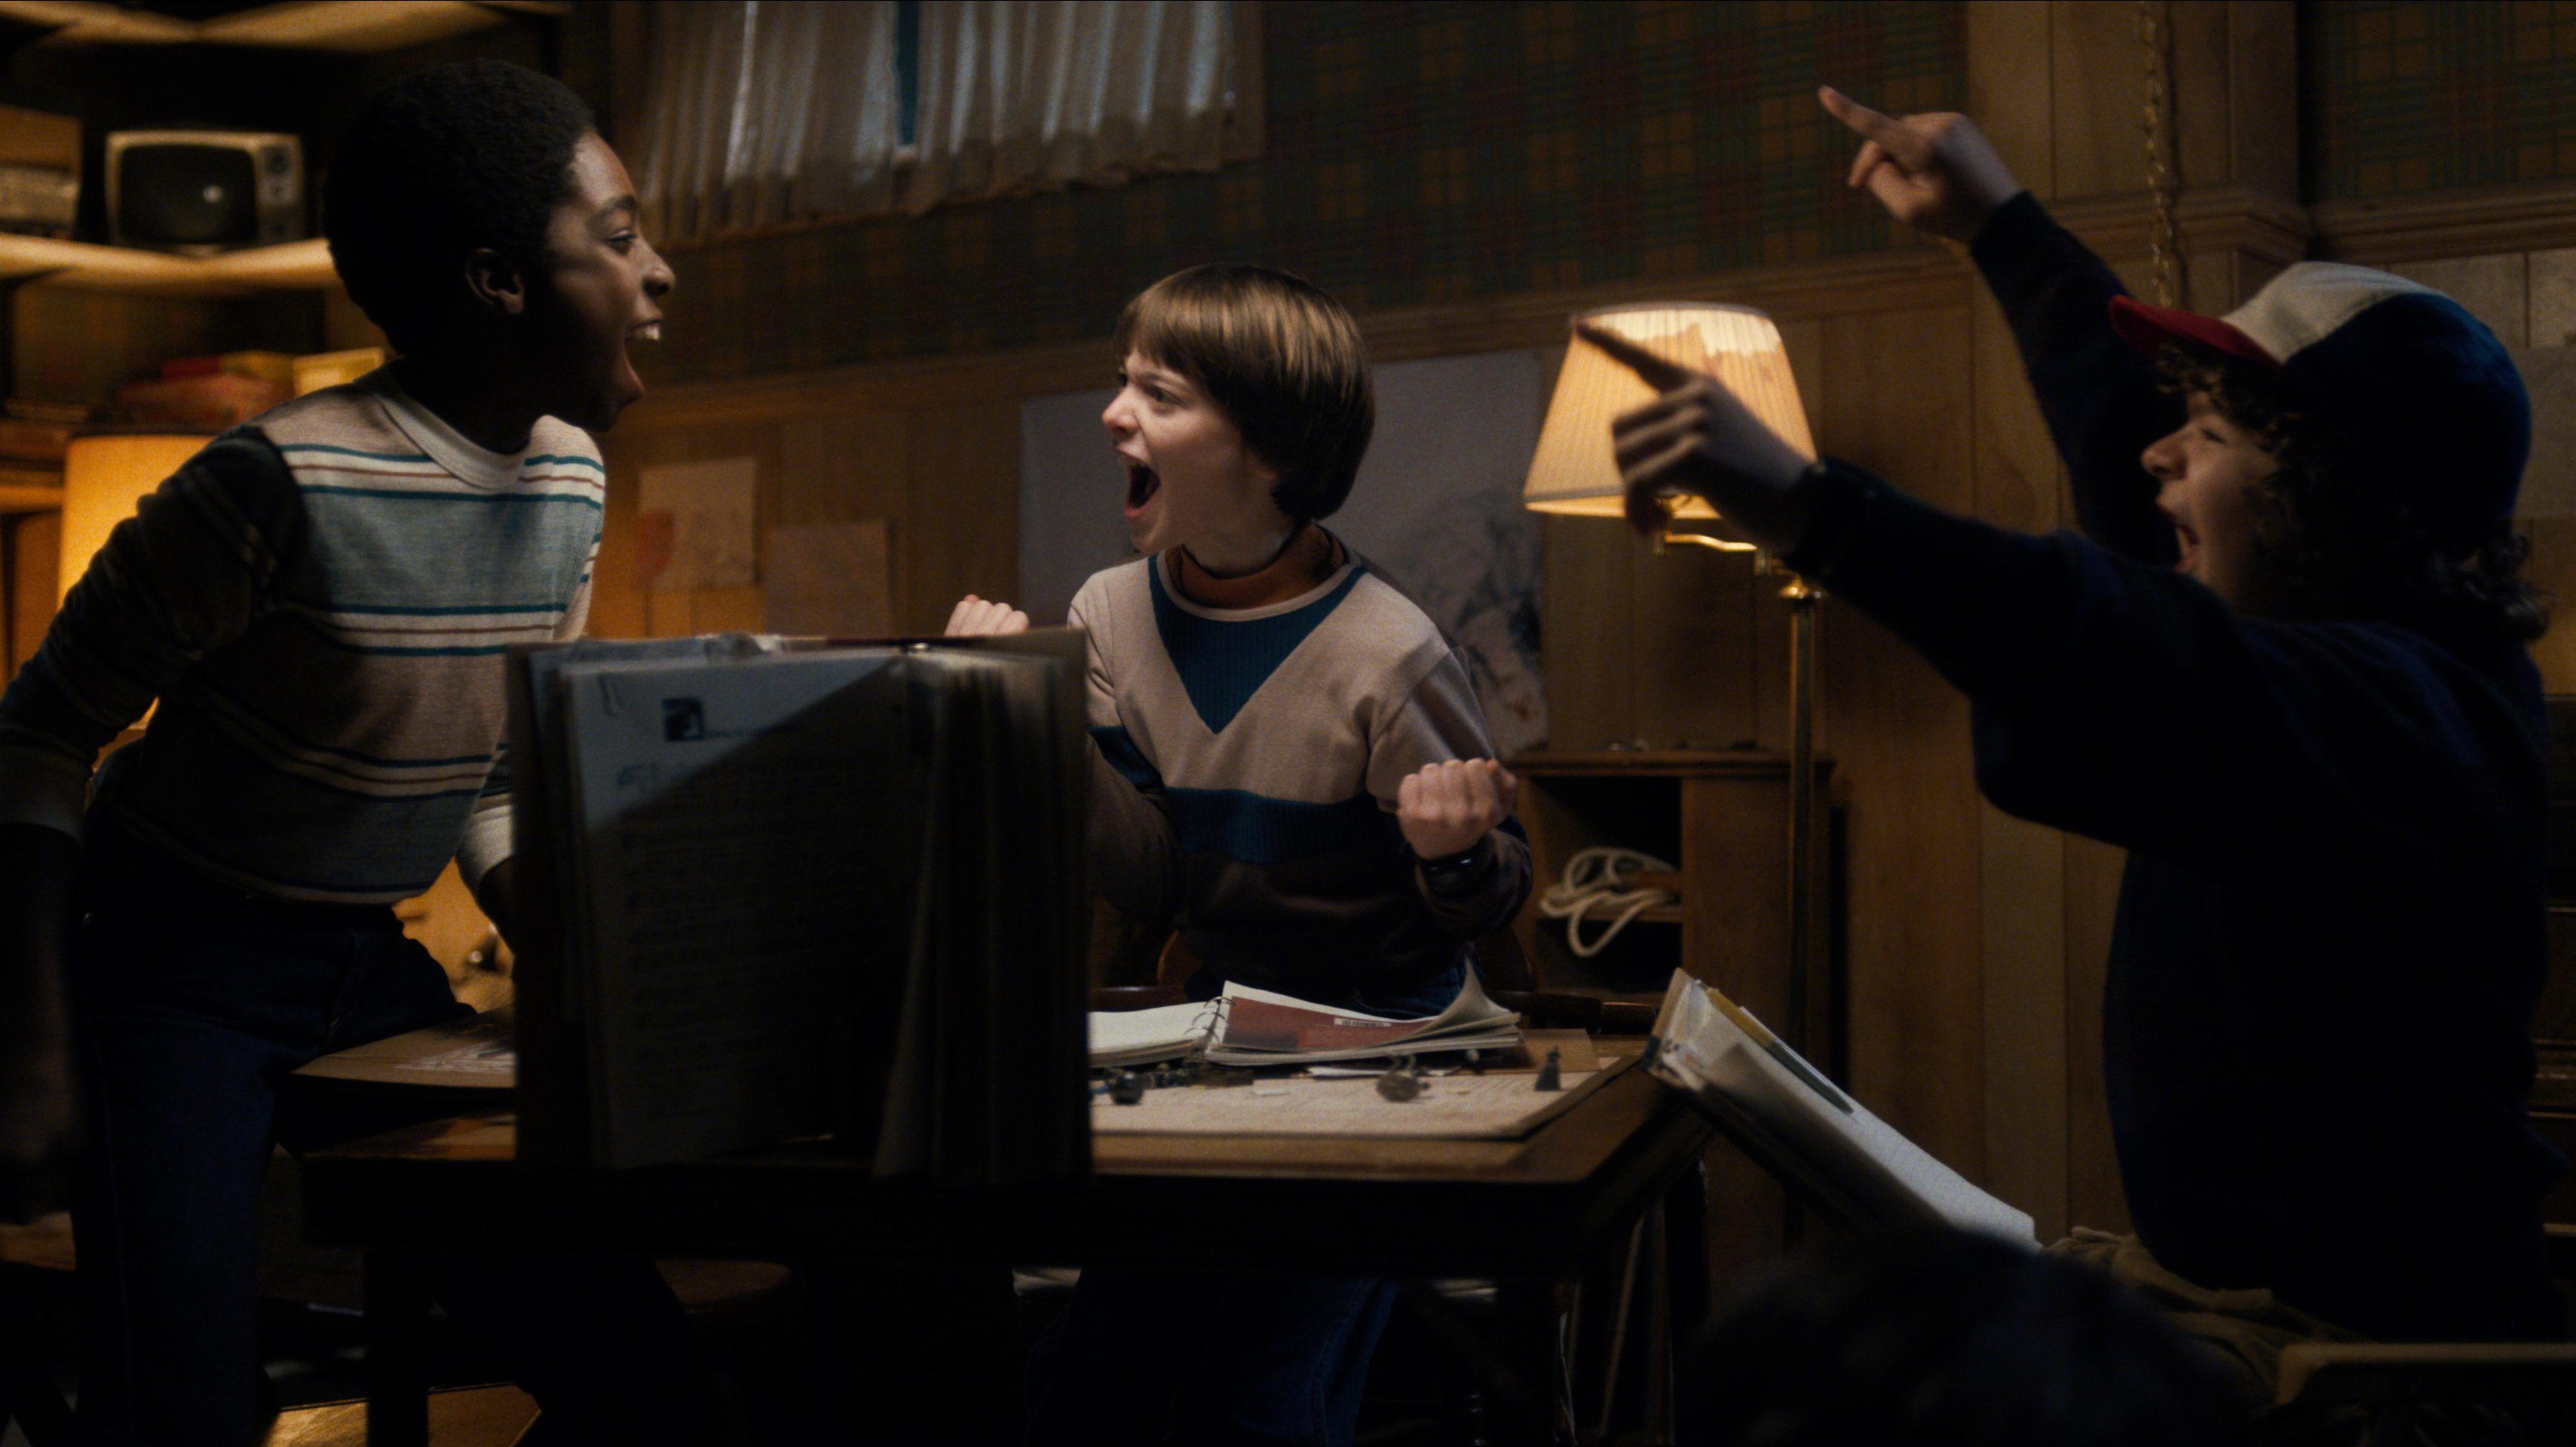 Duffer Brothers Deny Allegations That They Copied Stranger Things Plot